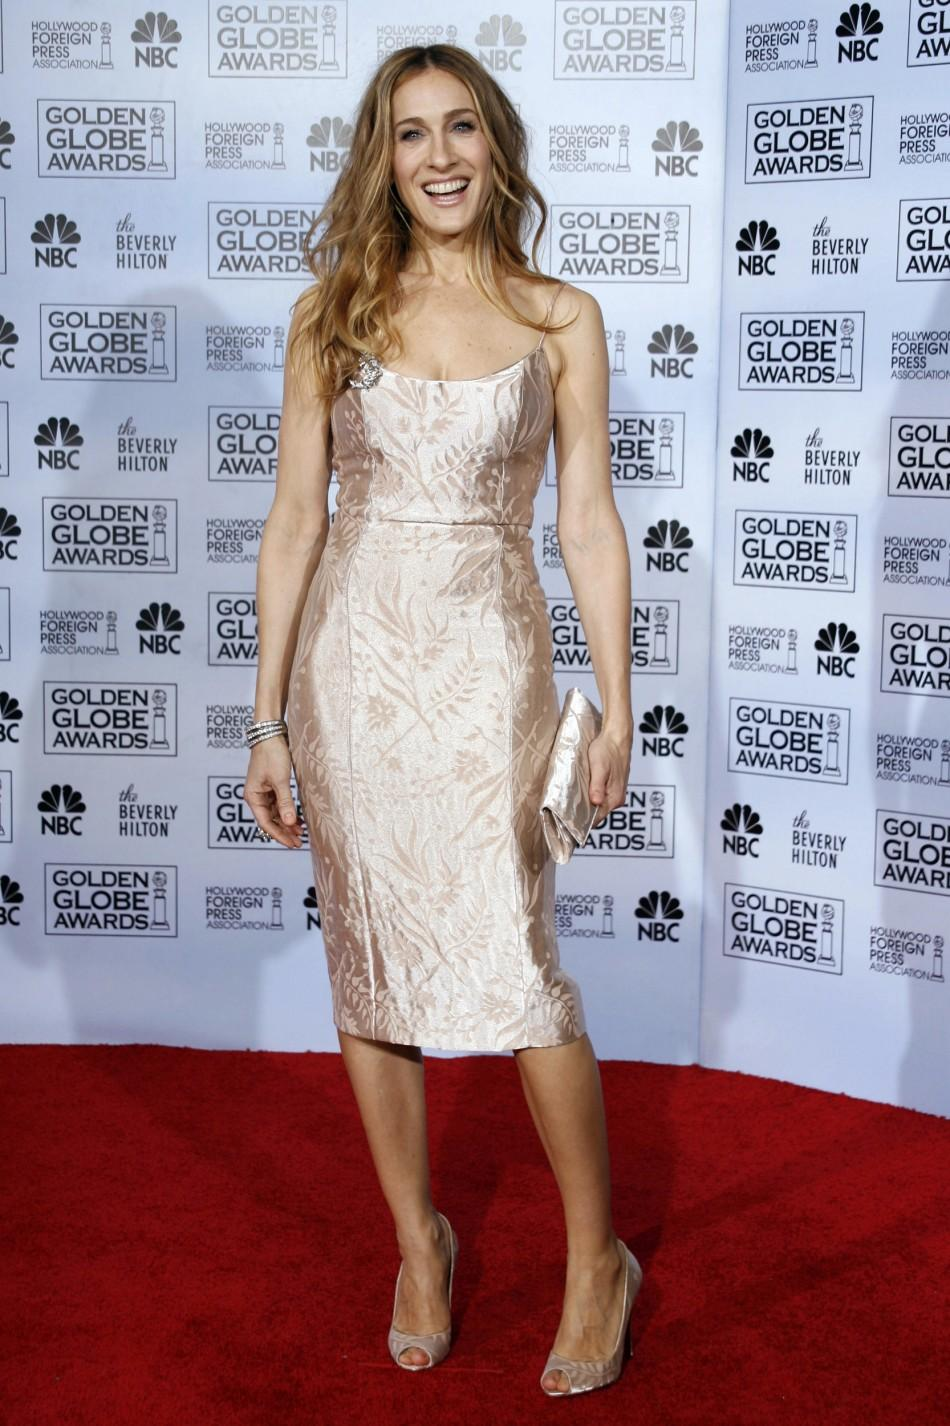 Sarah Jessica Parker poses backstage at the 64th annual Golden Globe Awards in Beverly Hills